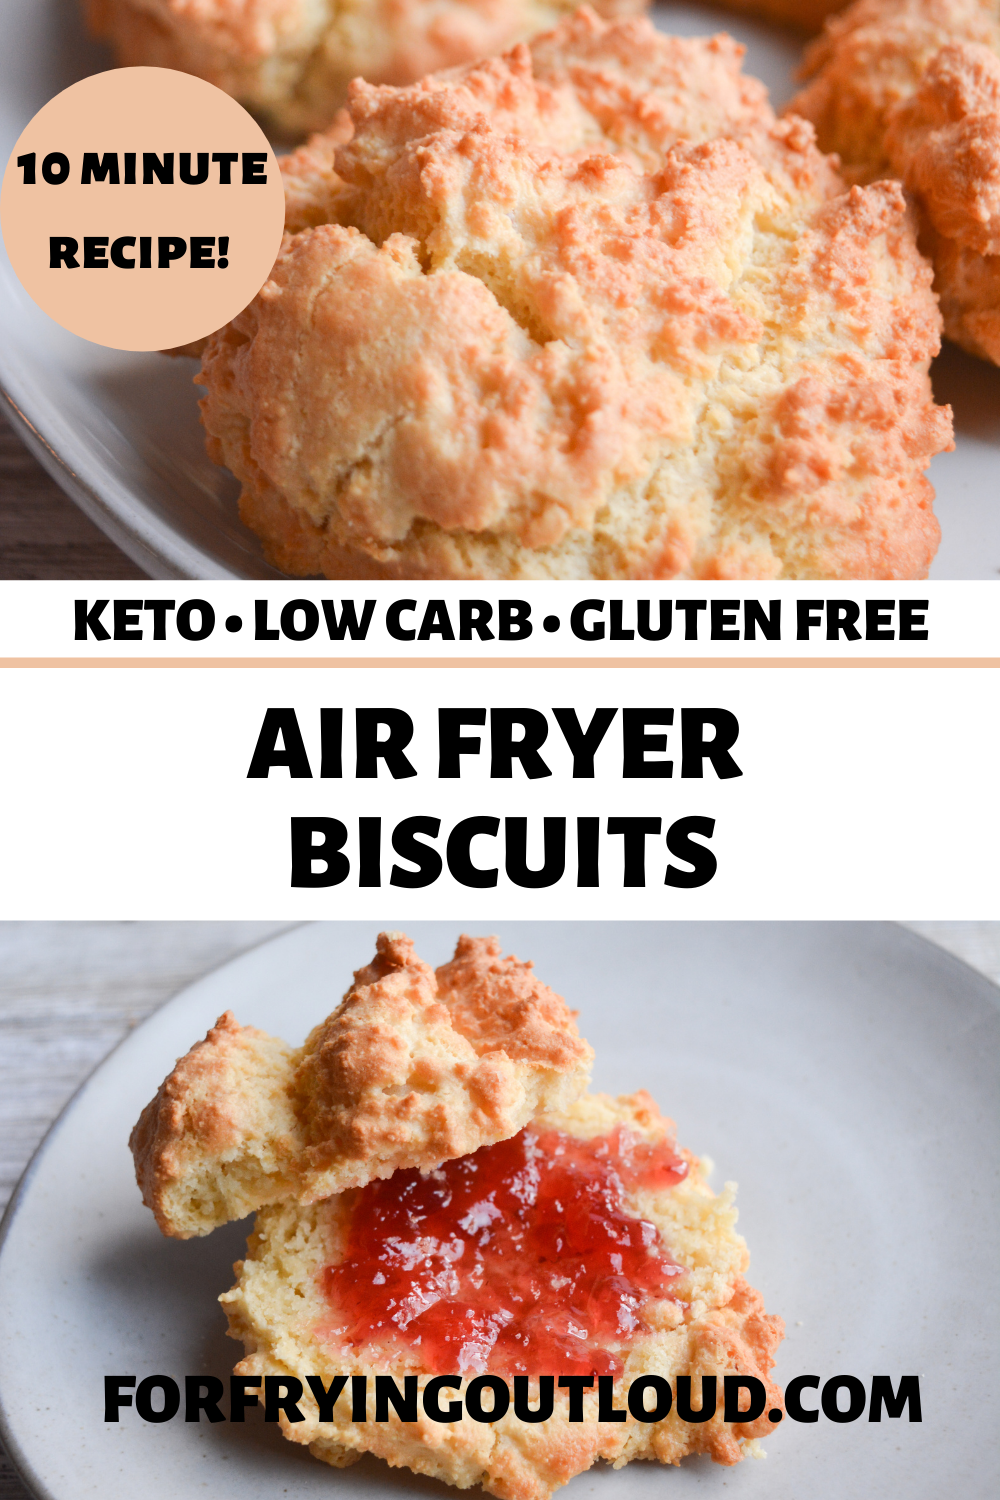 These keto biscuits are the perfect low carb side dish. You're only 6 ingredients away from a delicious air fryer recipe that cooks in only 10 minutes!